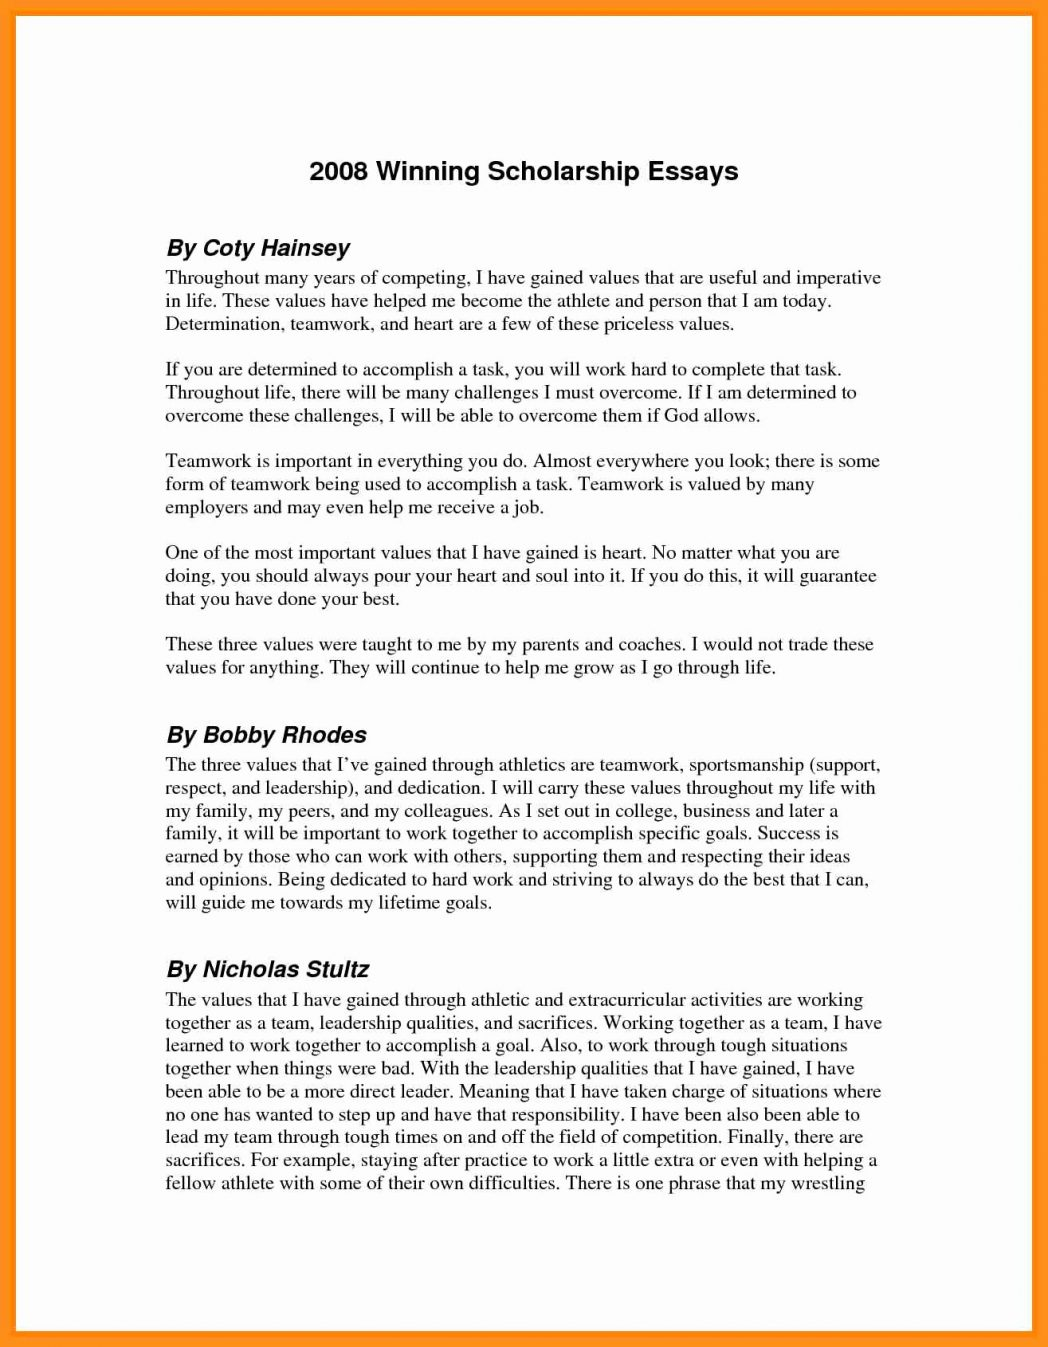 020 Examples Of Scholarshipsay Winning Resume Financi Pdf Career Goals Nursing About Yourself Financial Need Words Why Do You Deserve This Single Mother 1048x1347 Word Dreaded 500 Scholarship Essay Samples How To Write A Full